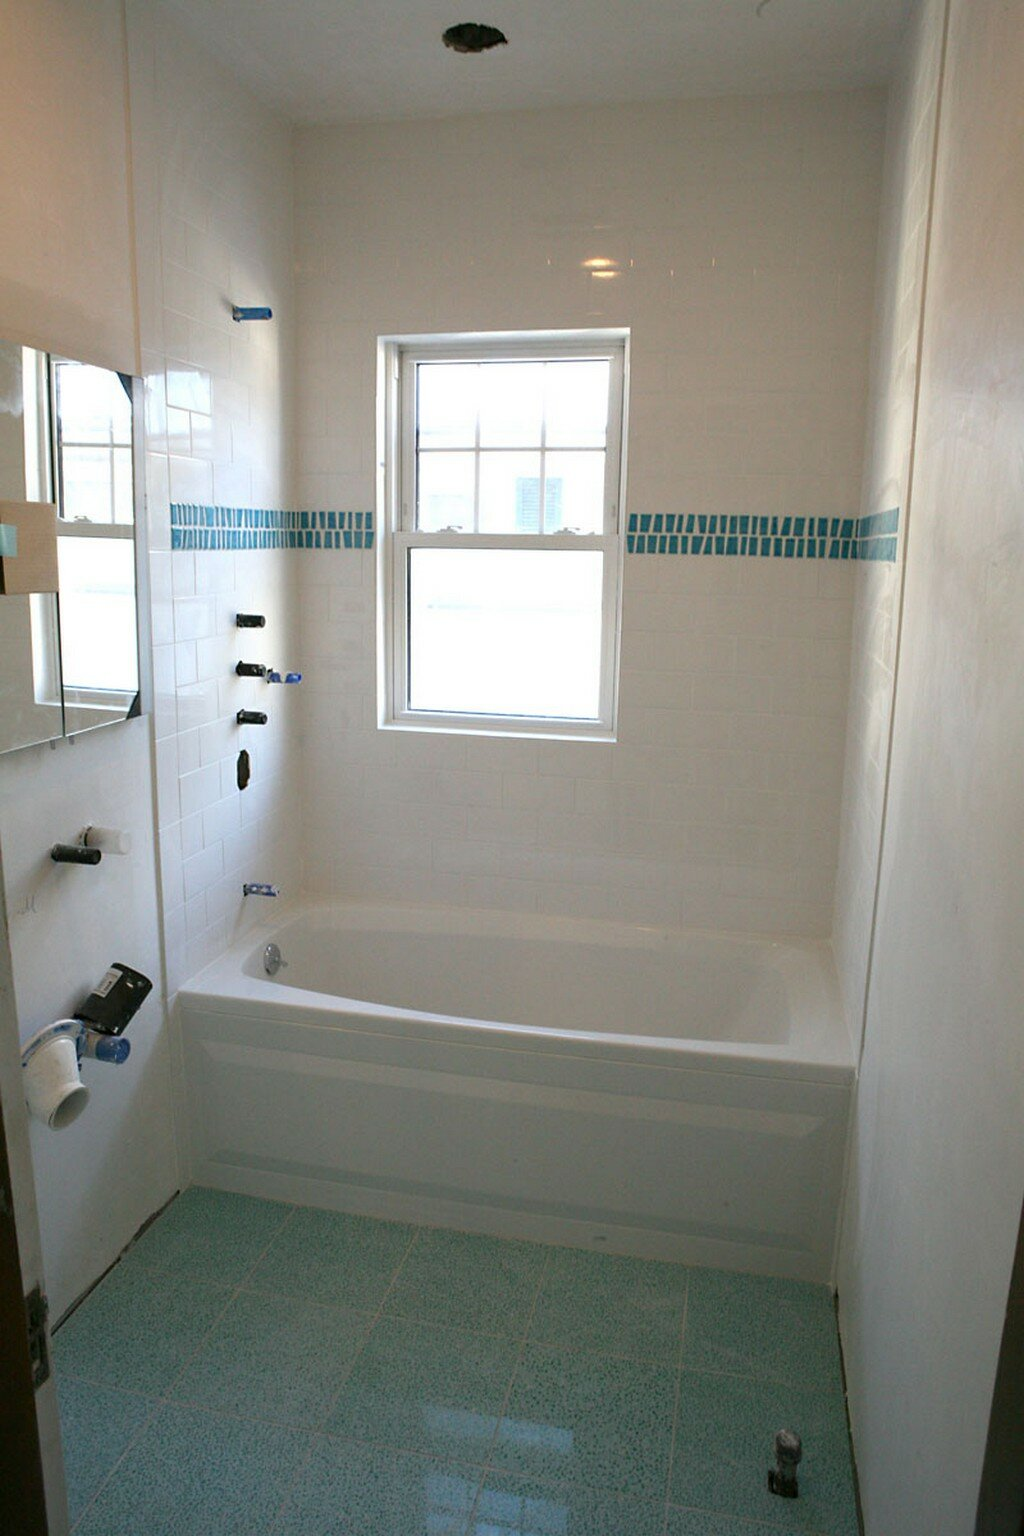 Small bathroom photos - Small bathroom pics ...